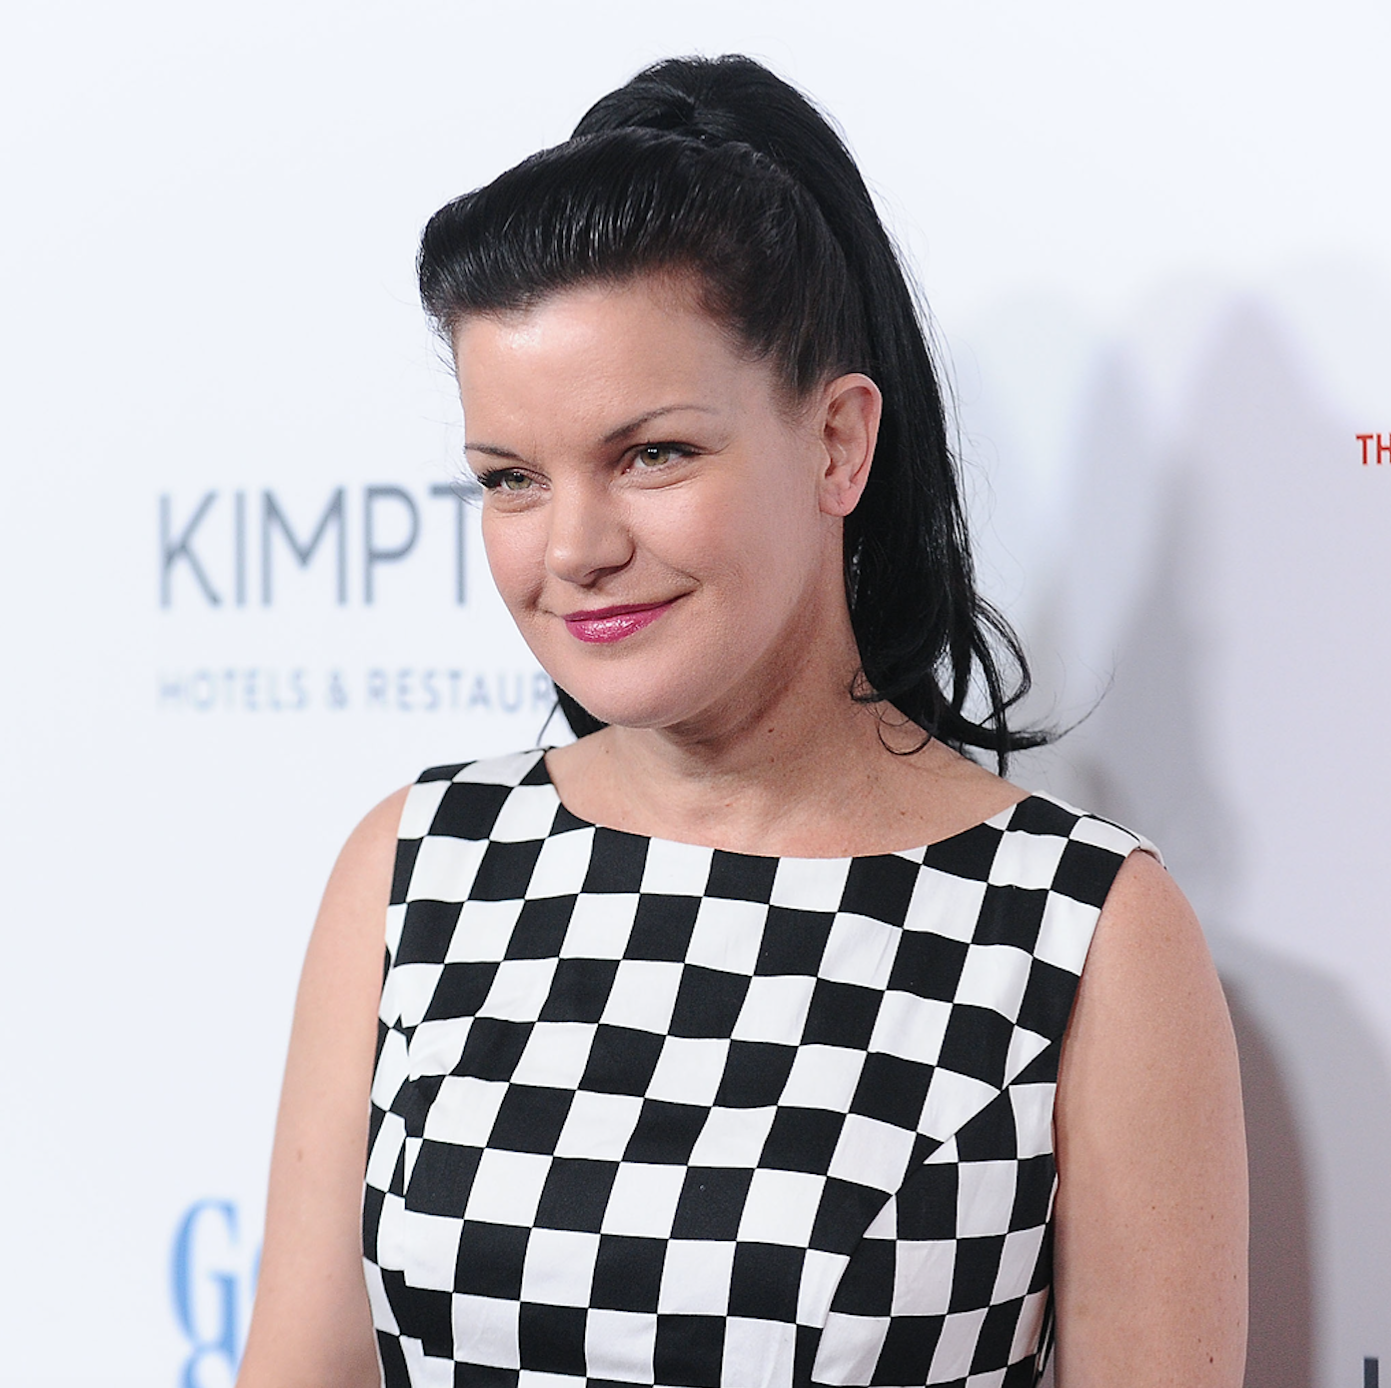 NCIS star Pauley Perrette misses new show's launch after being taken to hospital